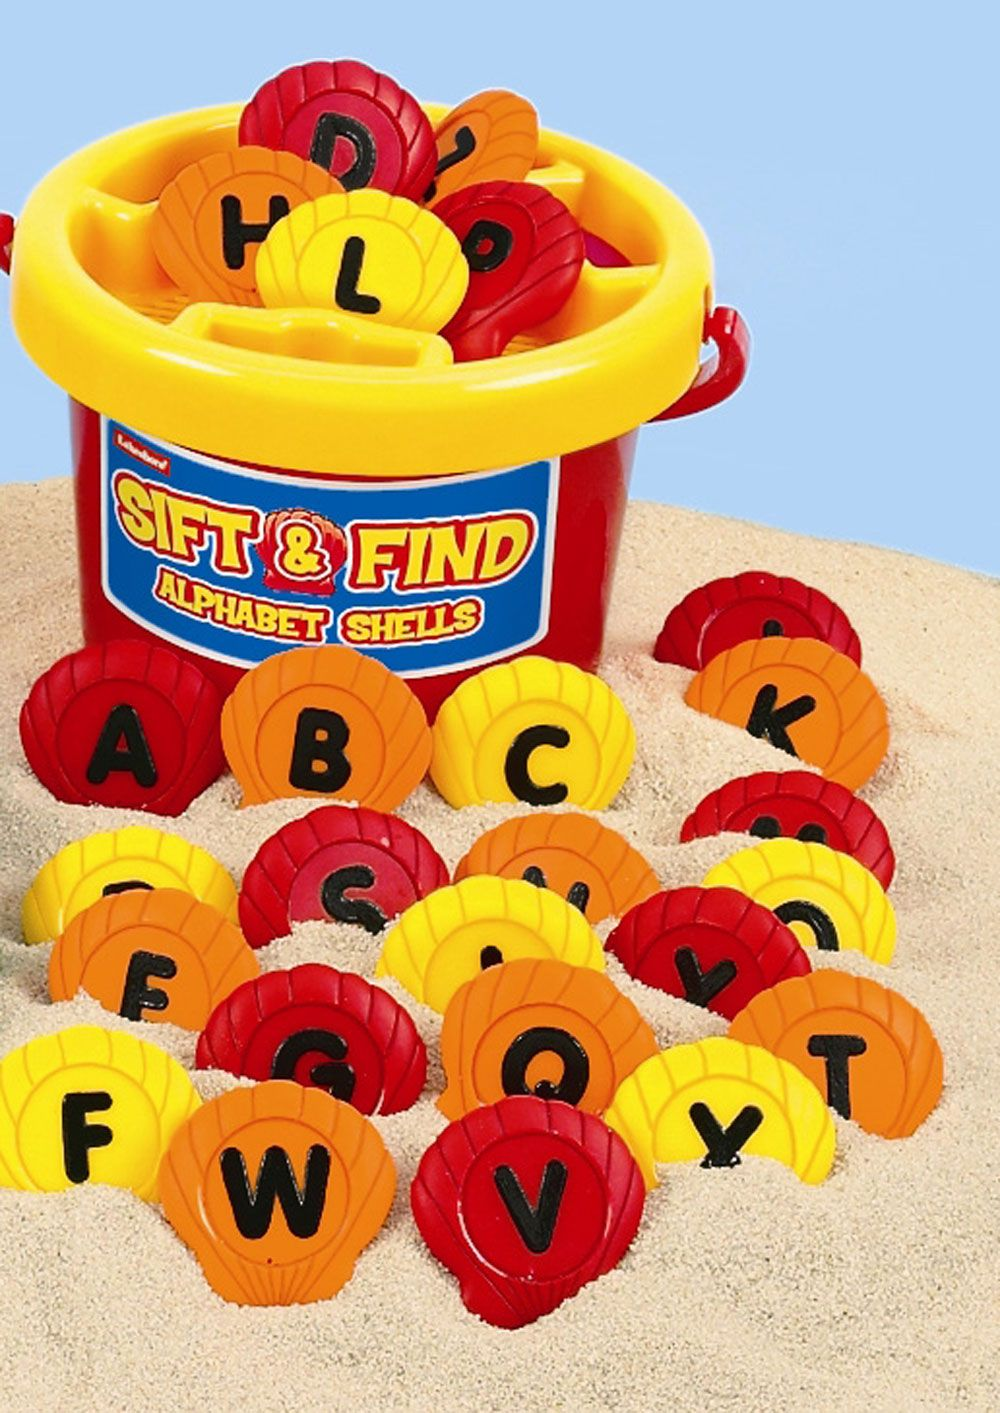 Sift and Find Alphabet Shells with Bucket - Assorted - Per Set